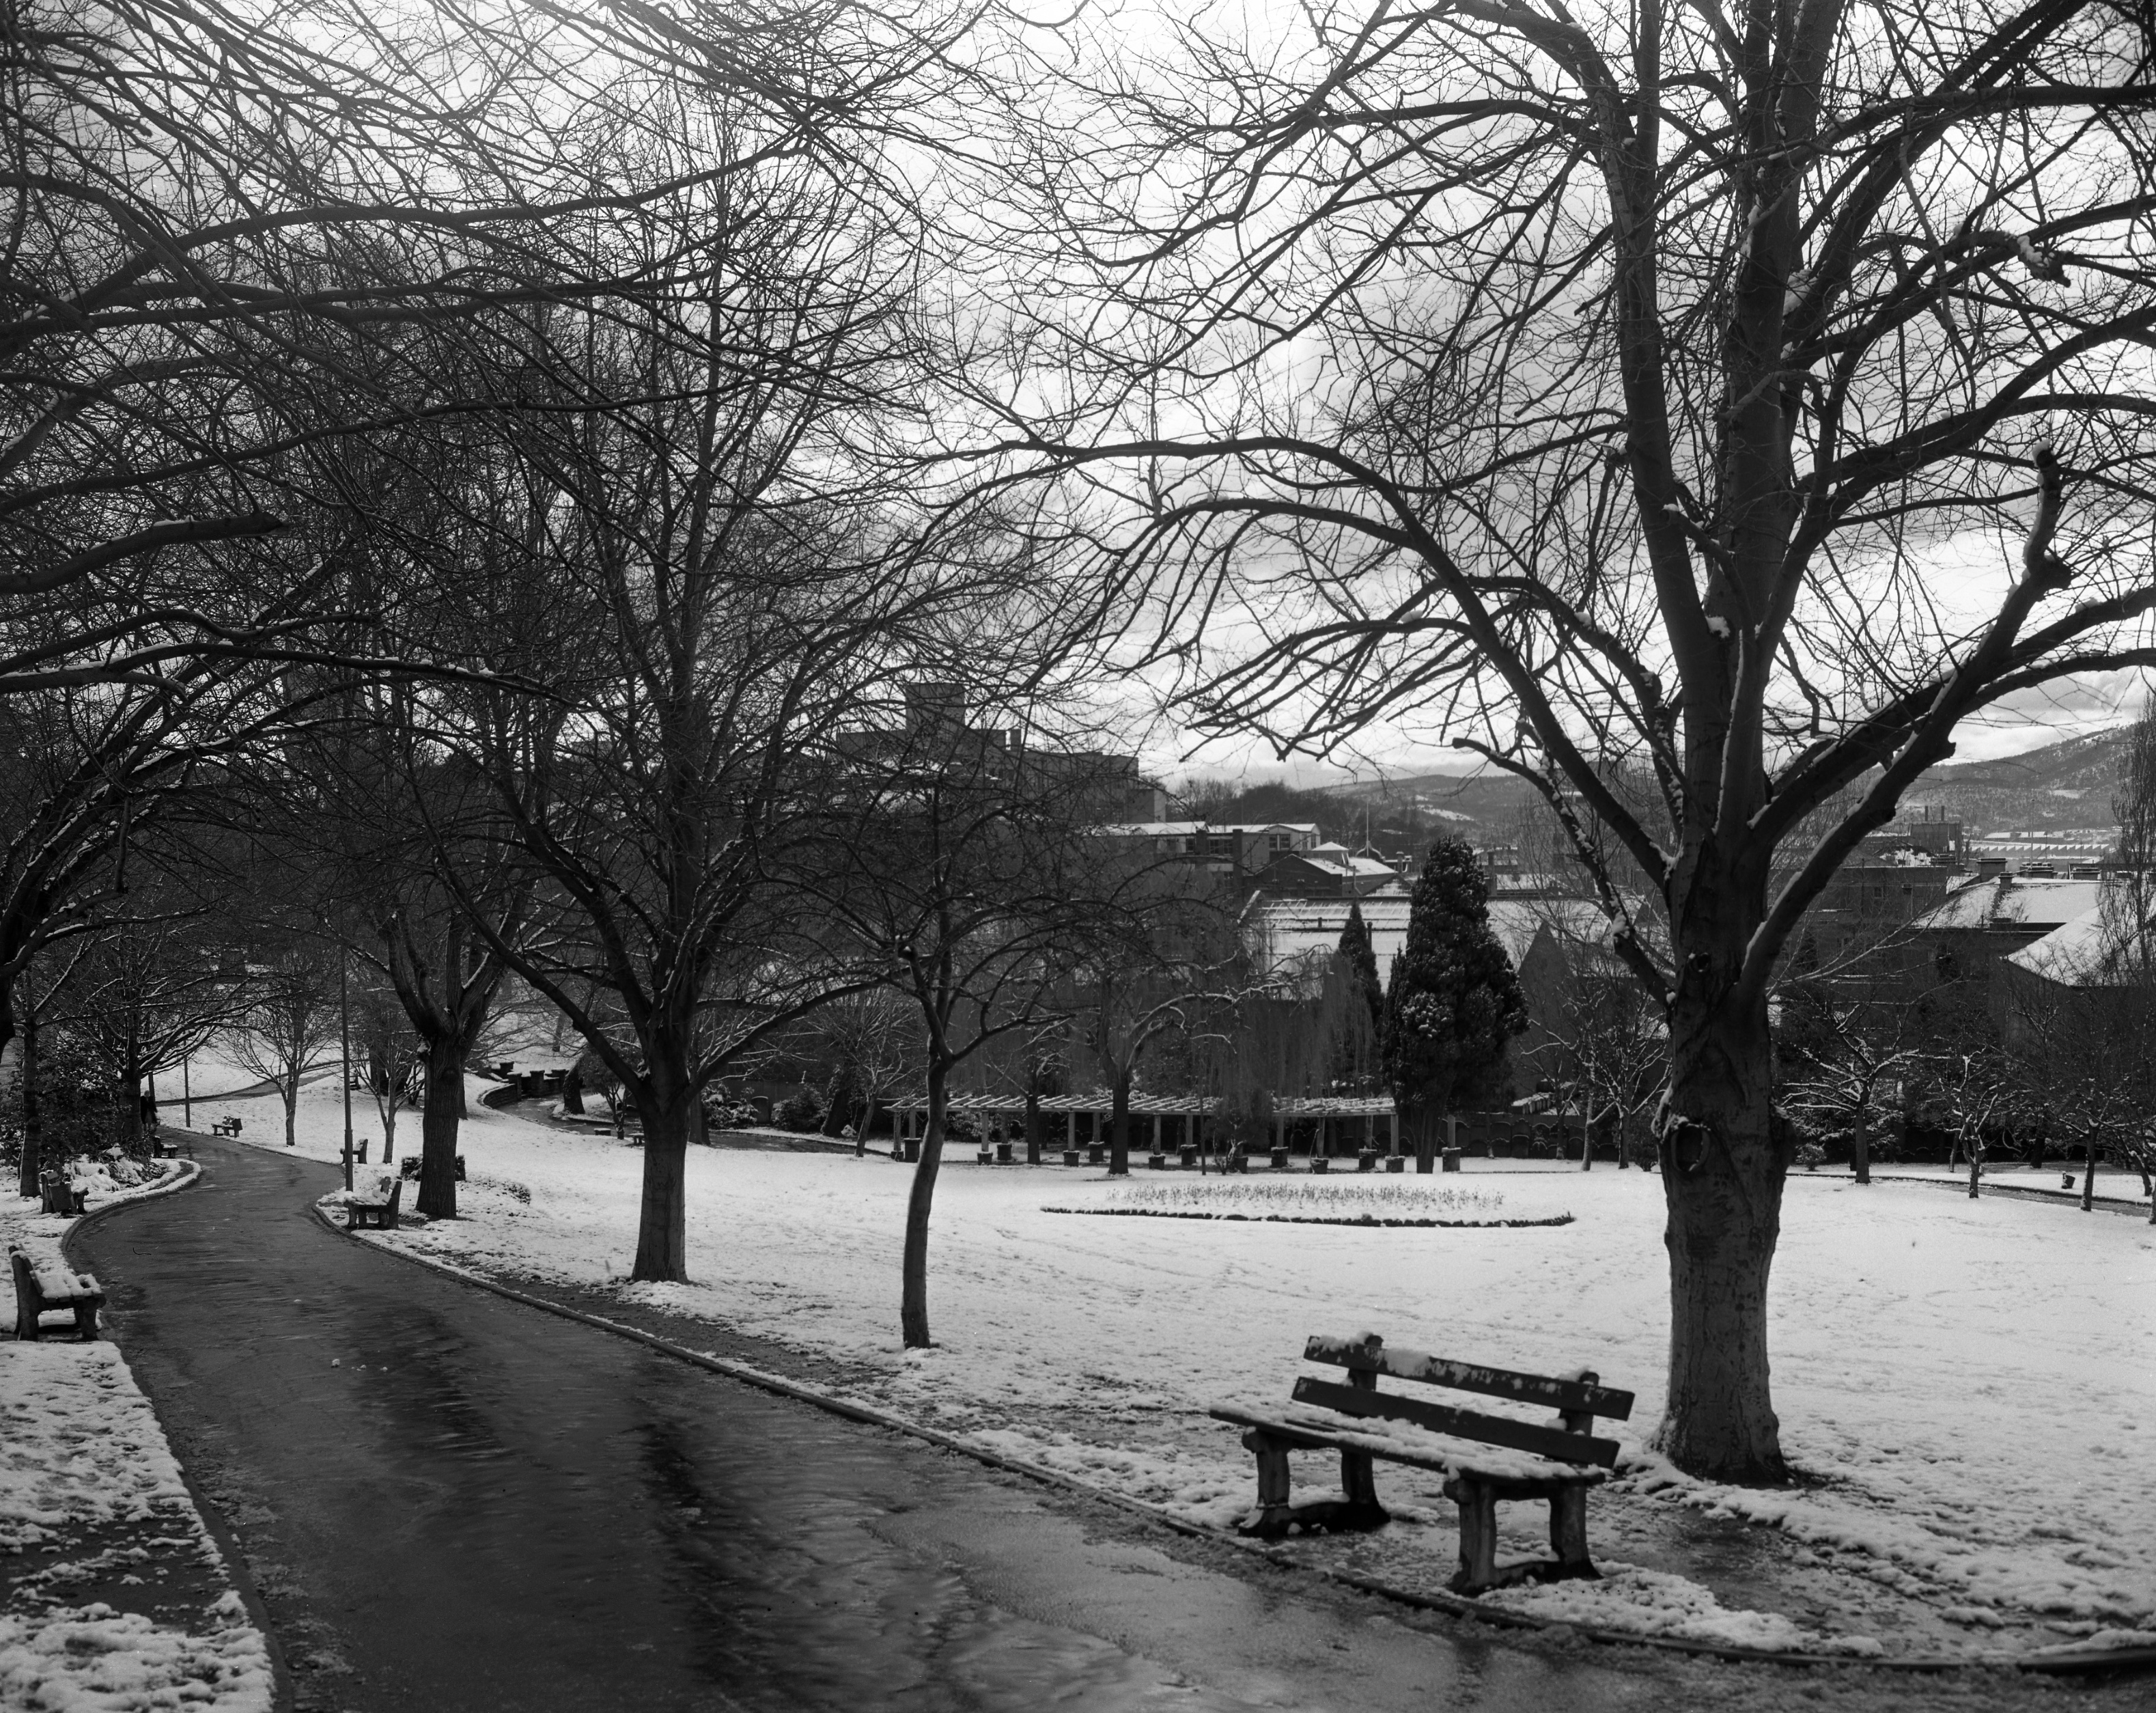 St David's Park - Hobart under snow circa 1951-1973